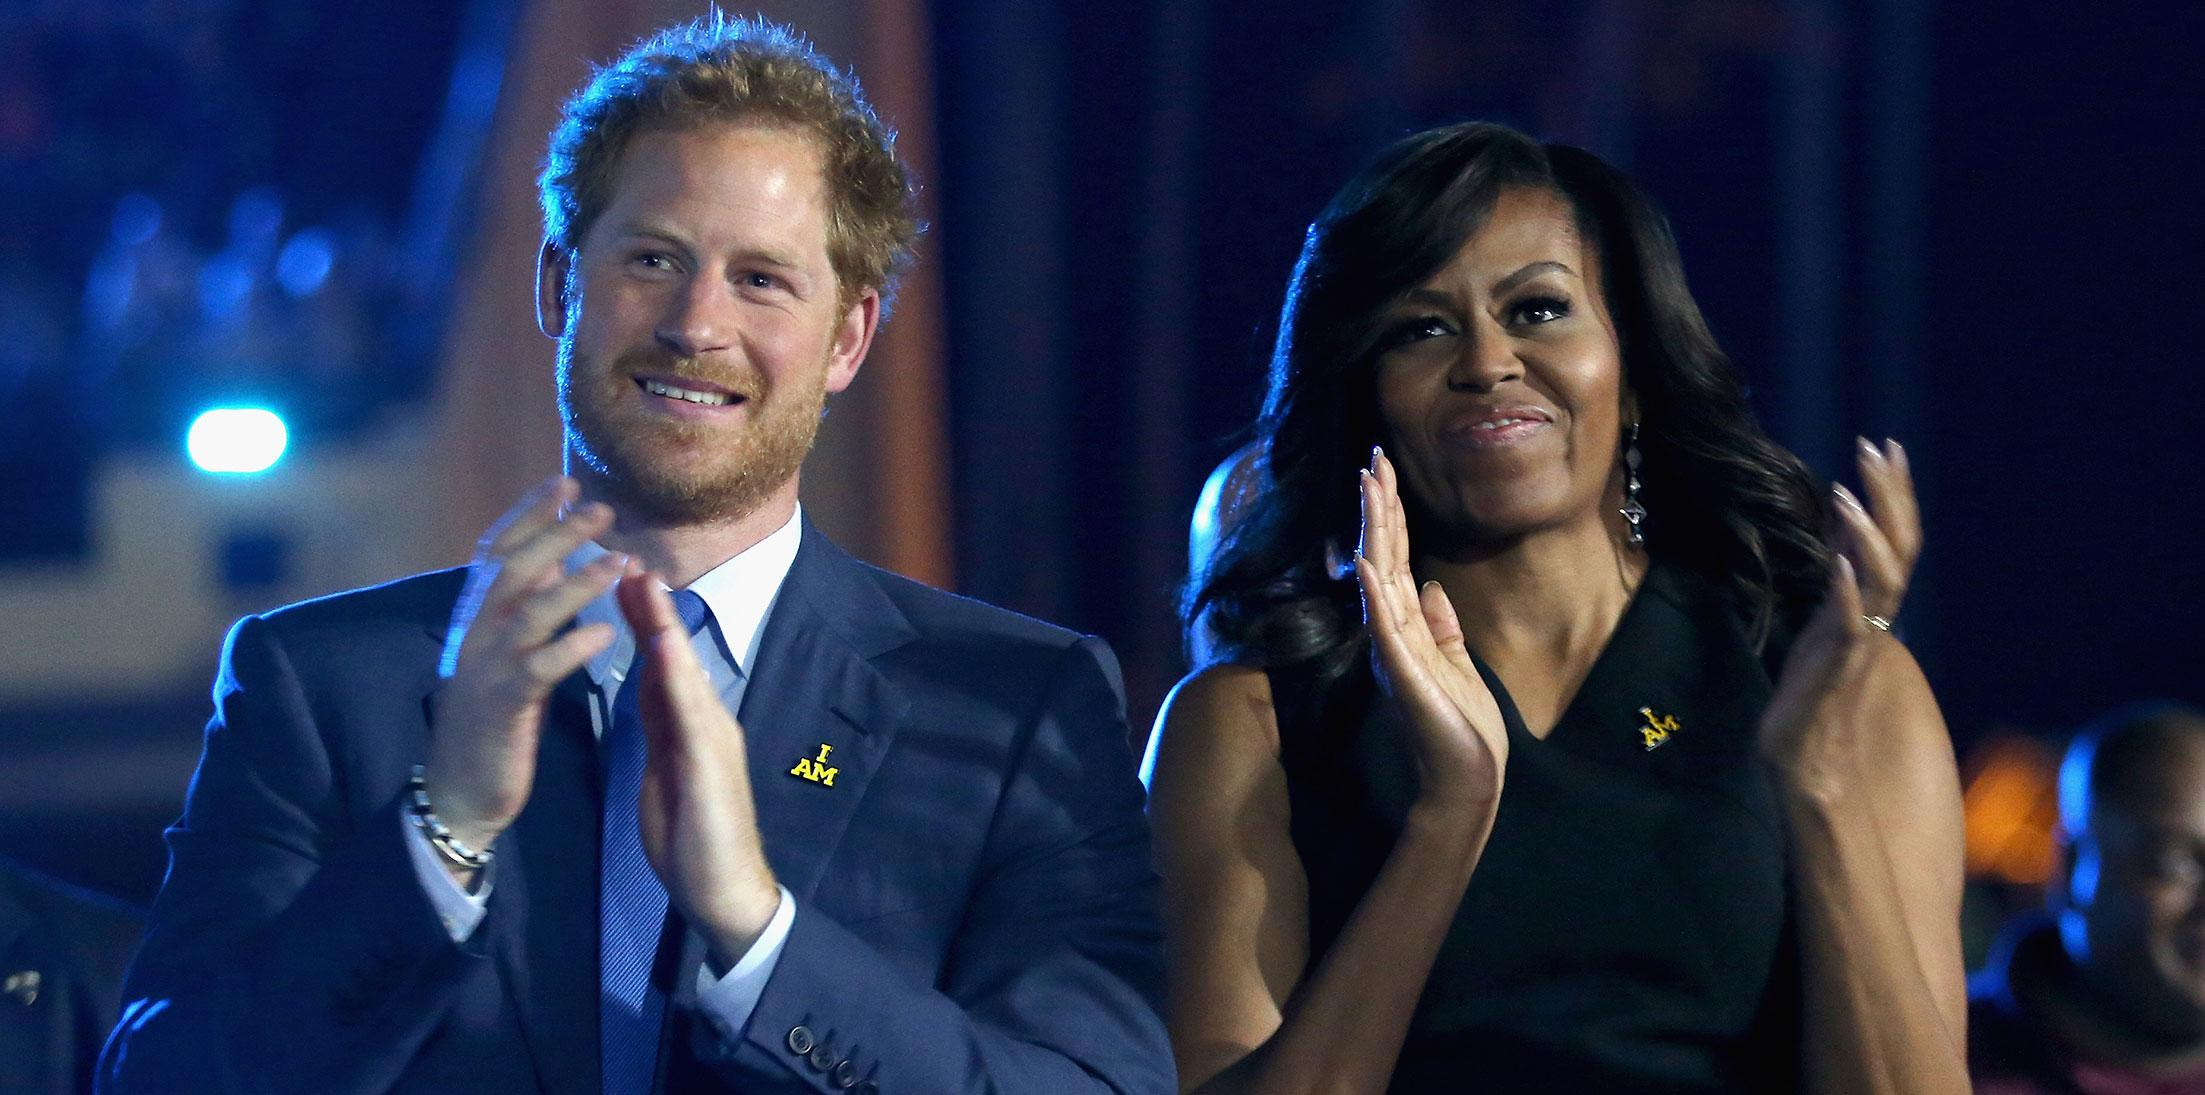 Prince harry michelle obama chicago wide